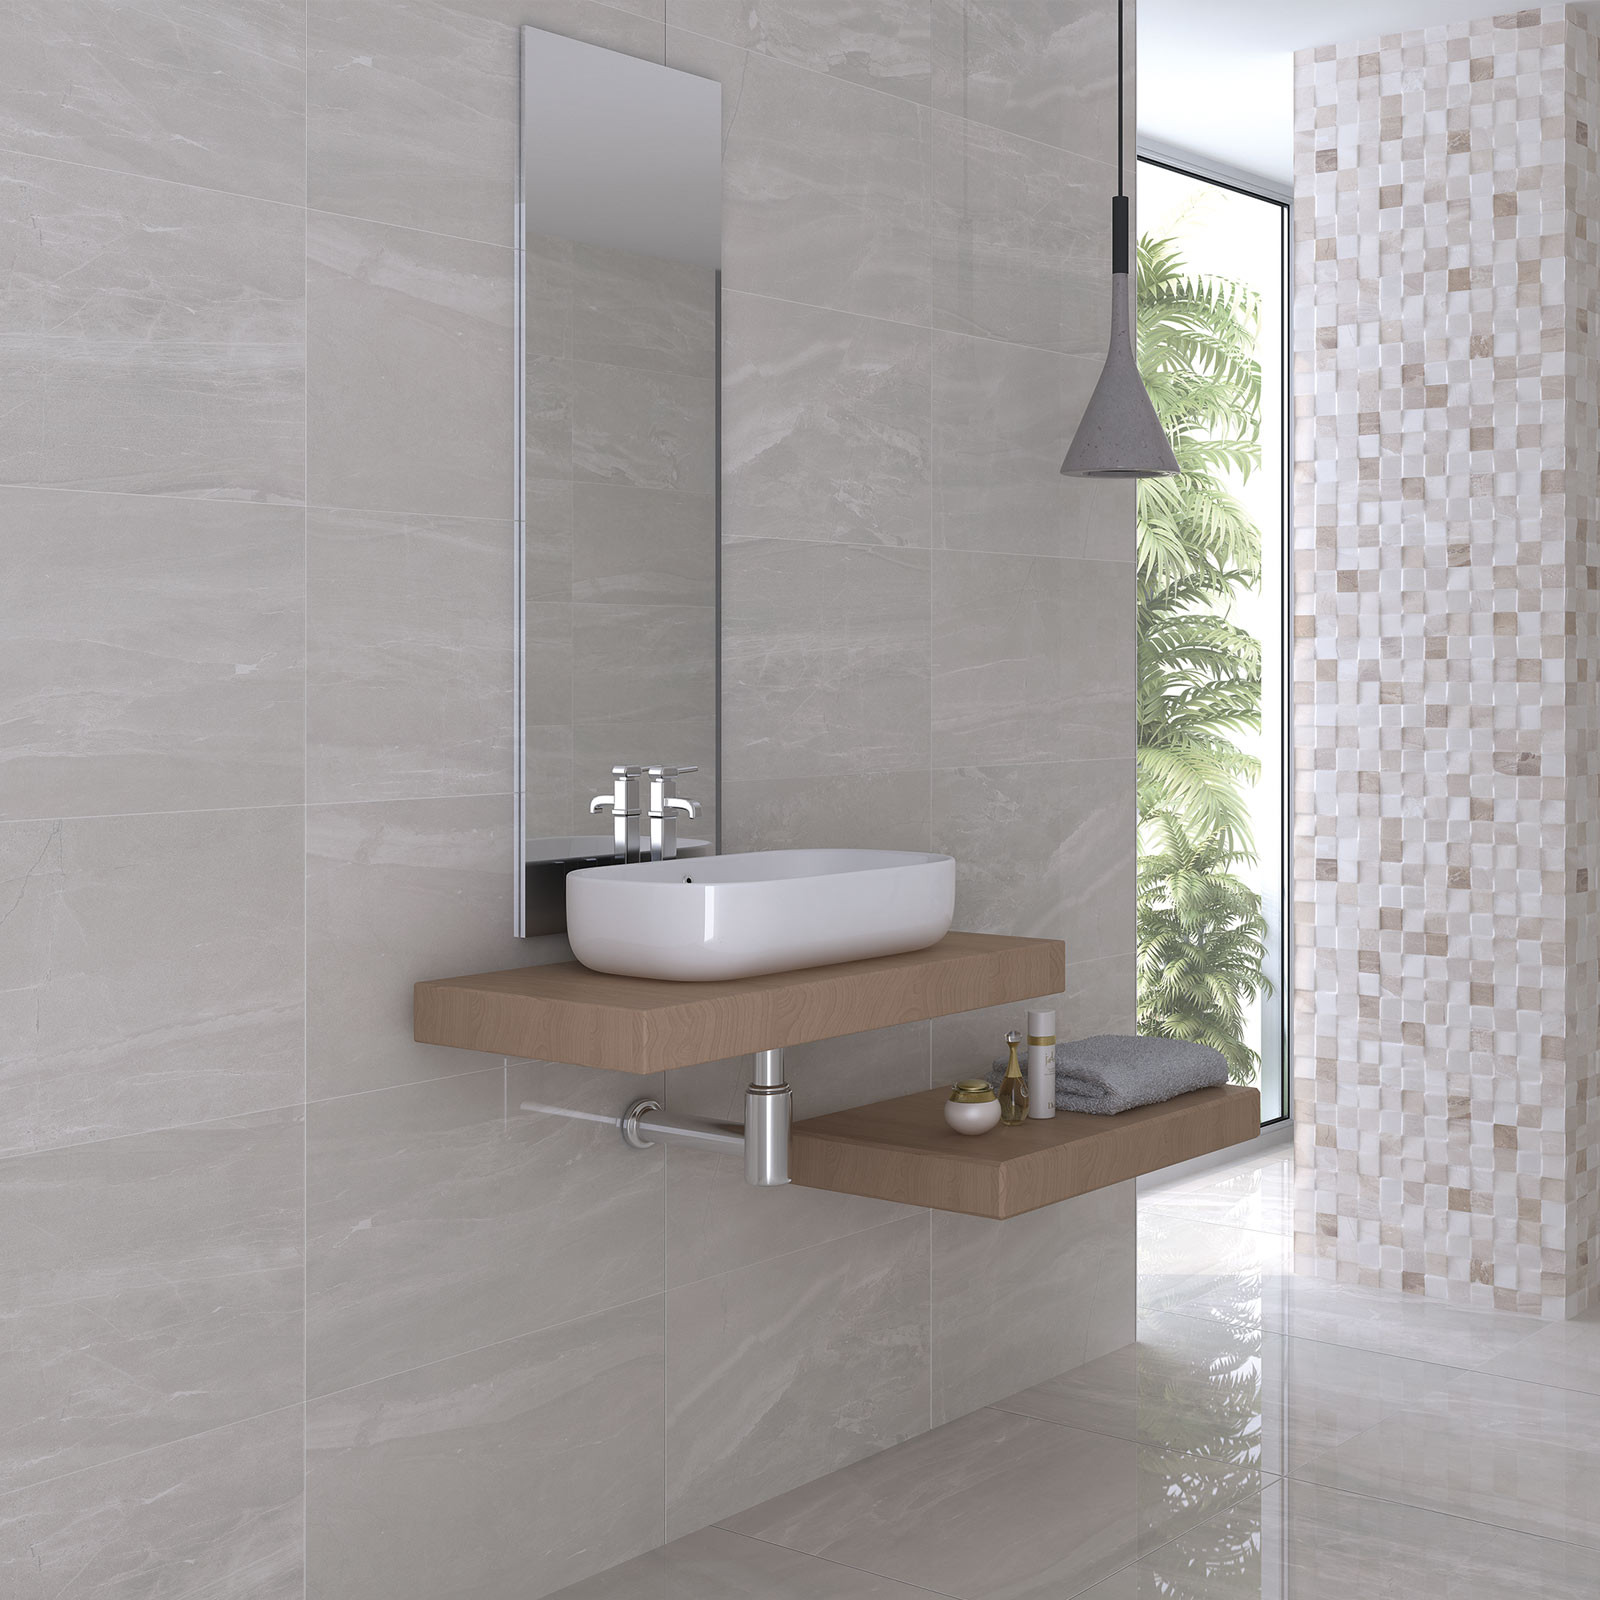 How To Do Wall Tile In Bathroom: Atrium Kios Perla Glazed Porcelain Wall Tile